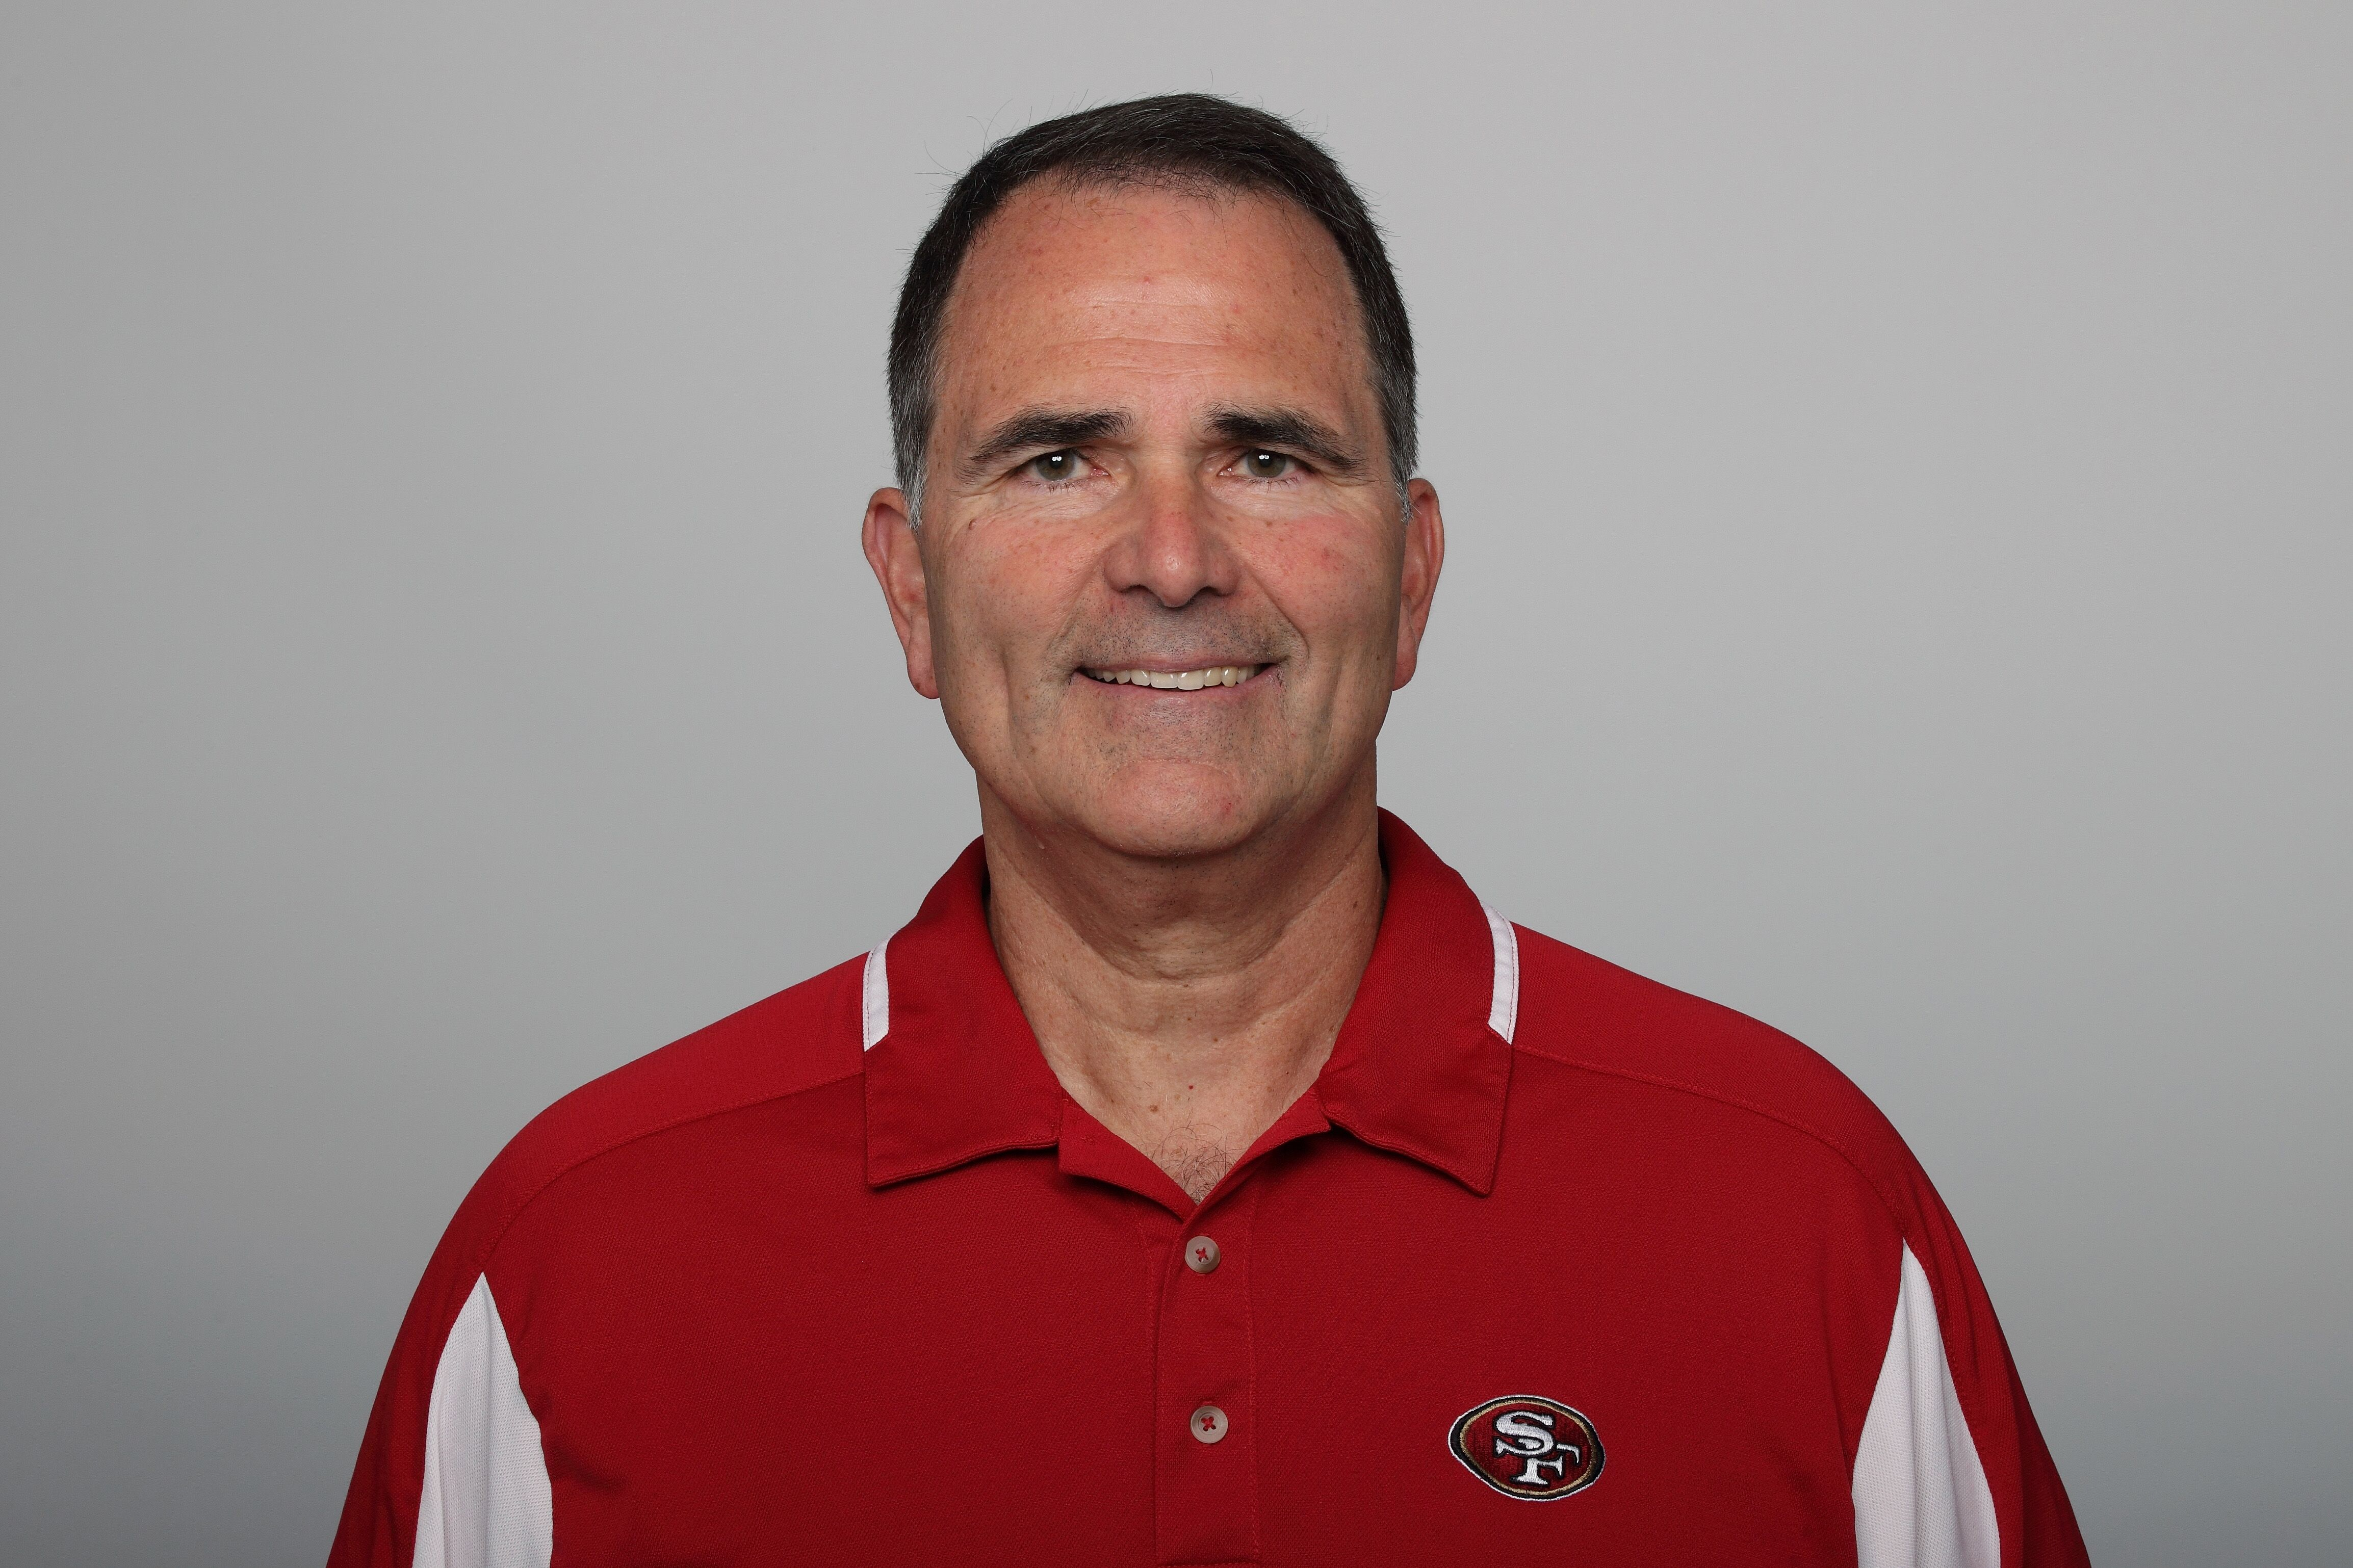 124641863-san-francisco-49ers-2011-headshots.jpg